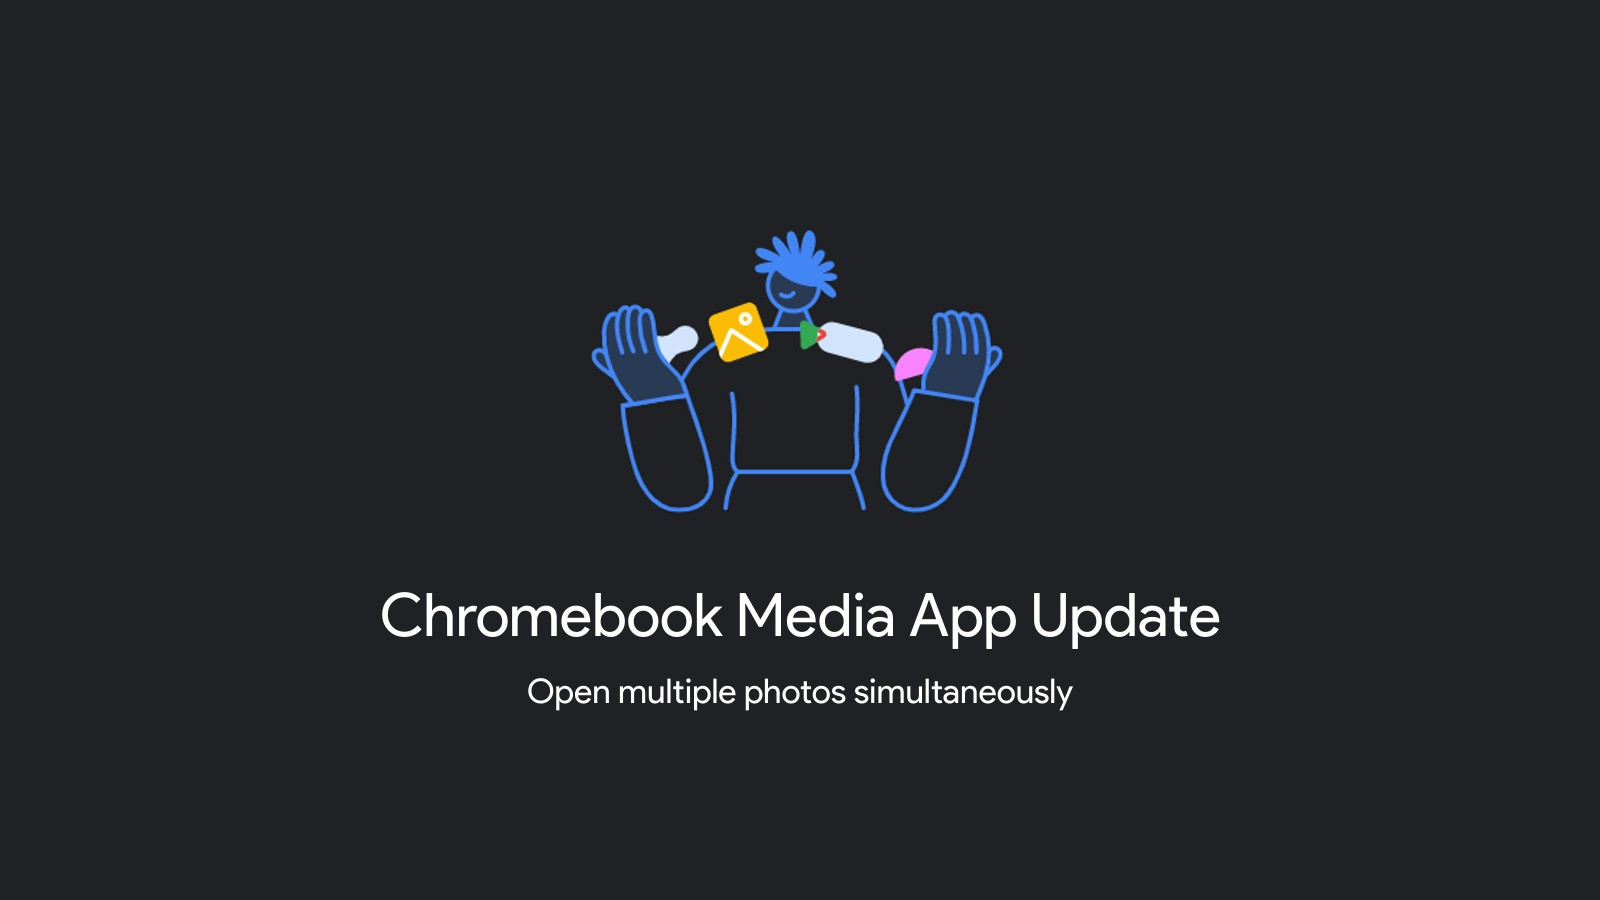 Chrome OS will soon let you compare images side by side with multiple Media app instances